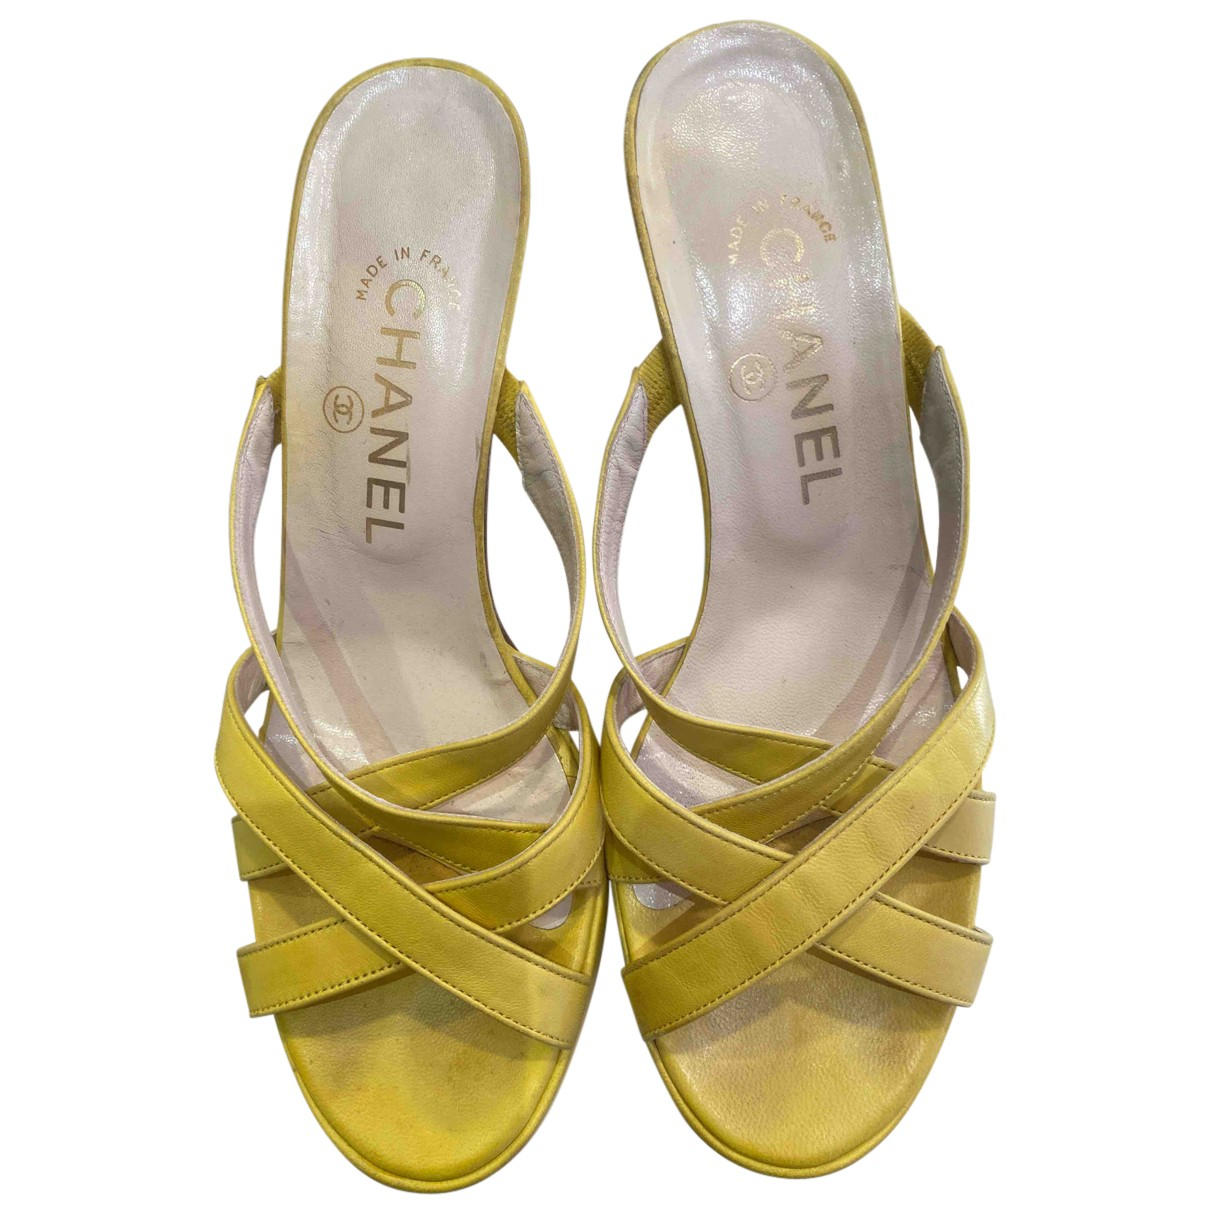 Chanel N Yellow Leather Sandals for Women 38.5 EU